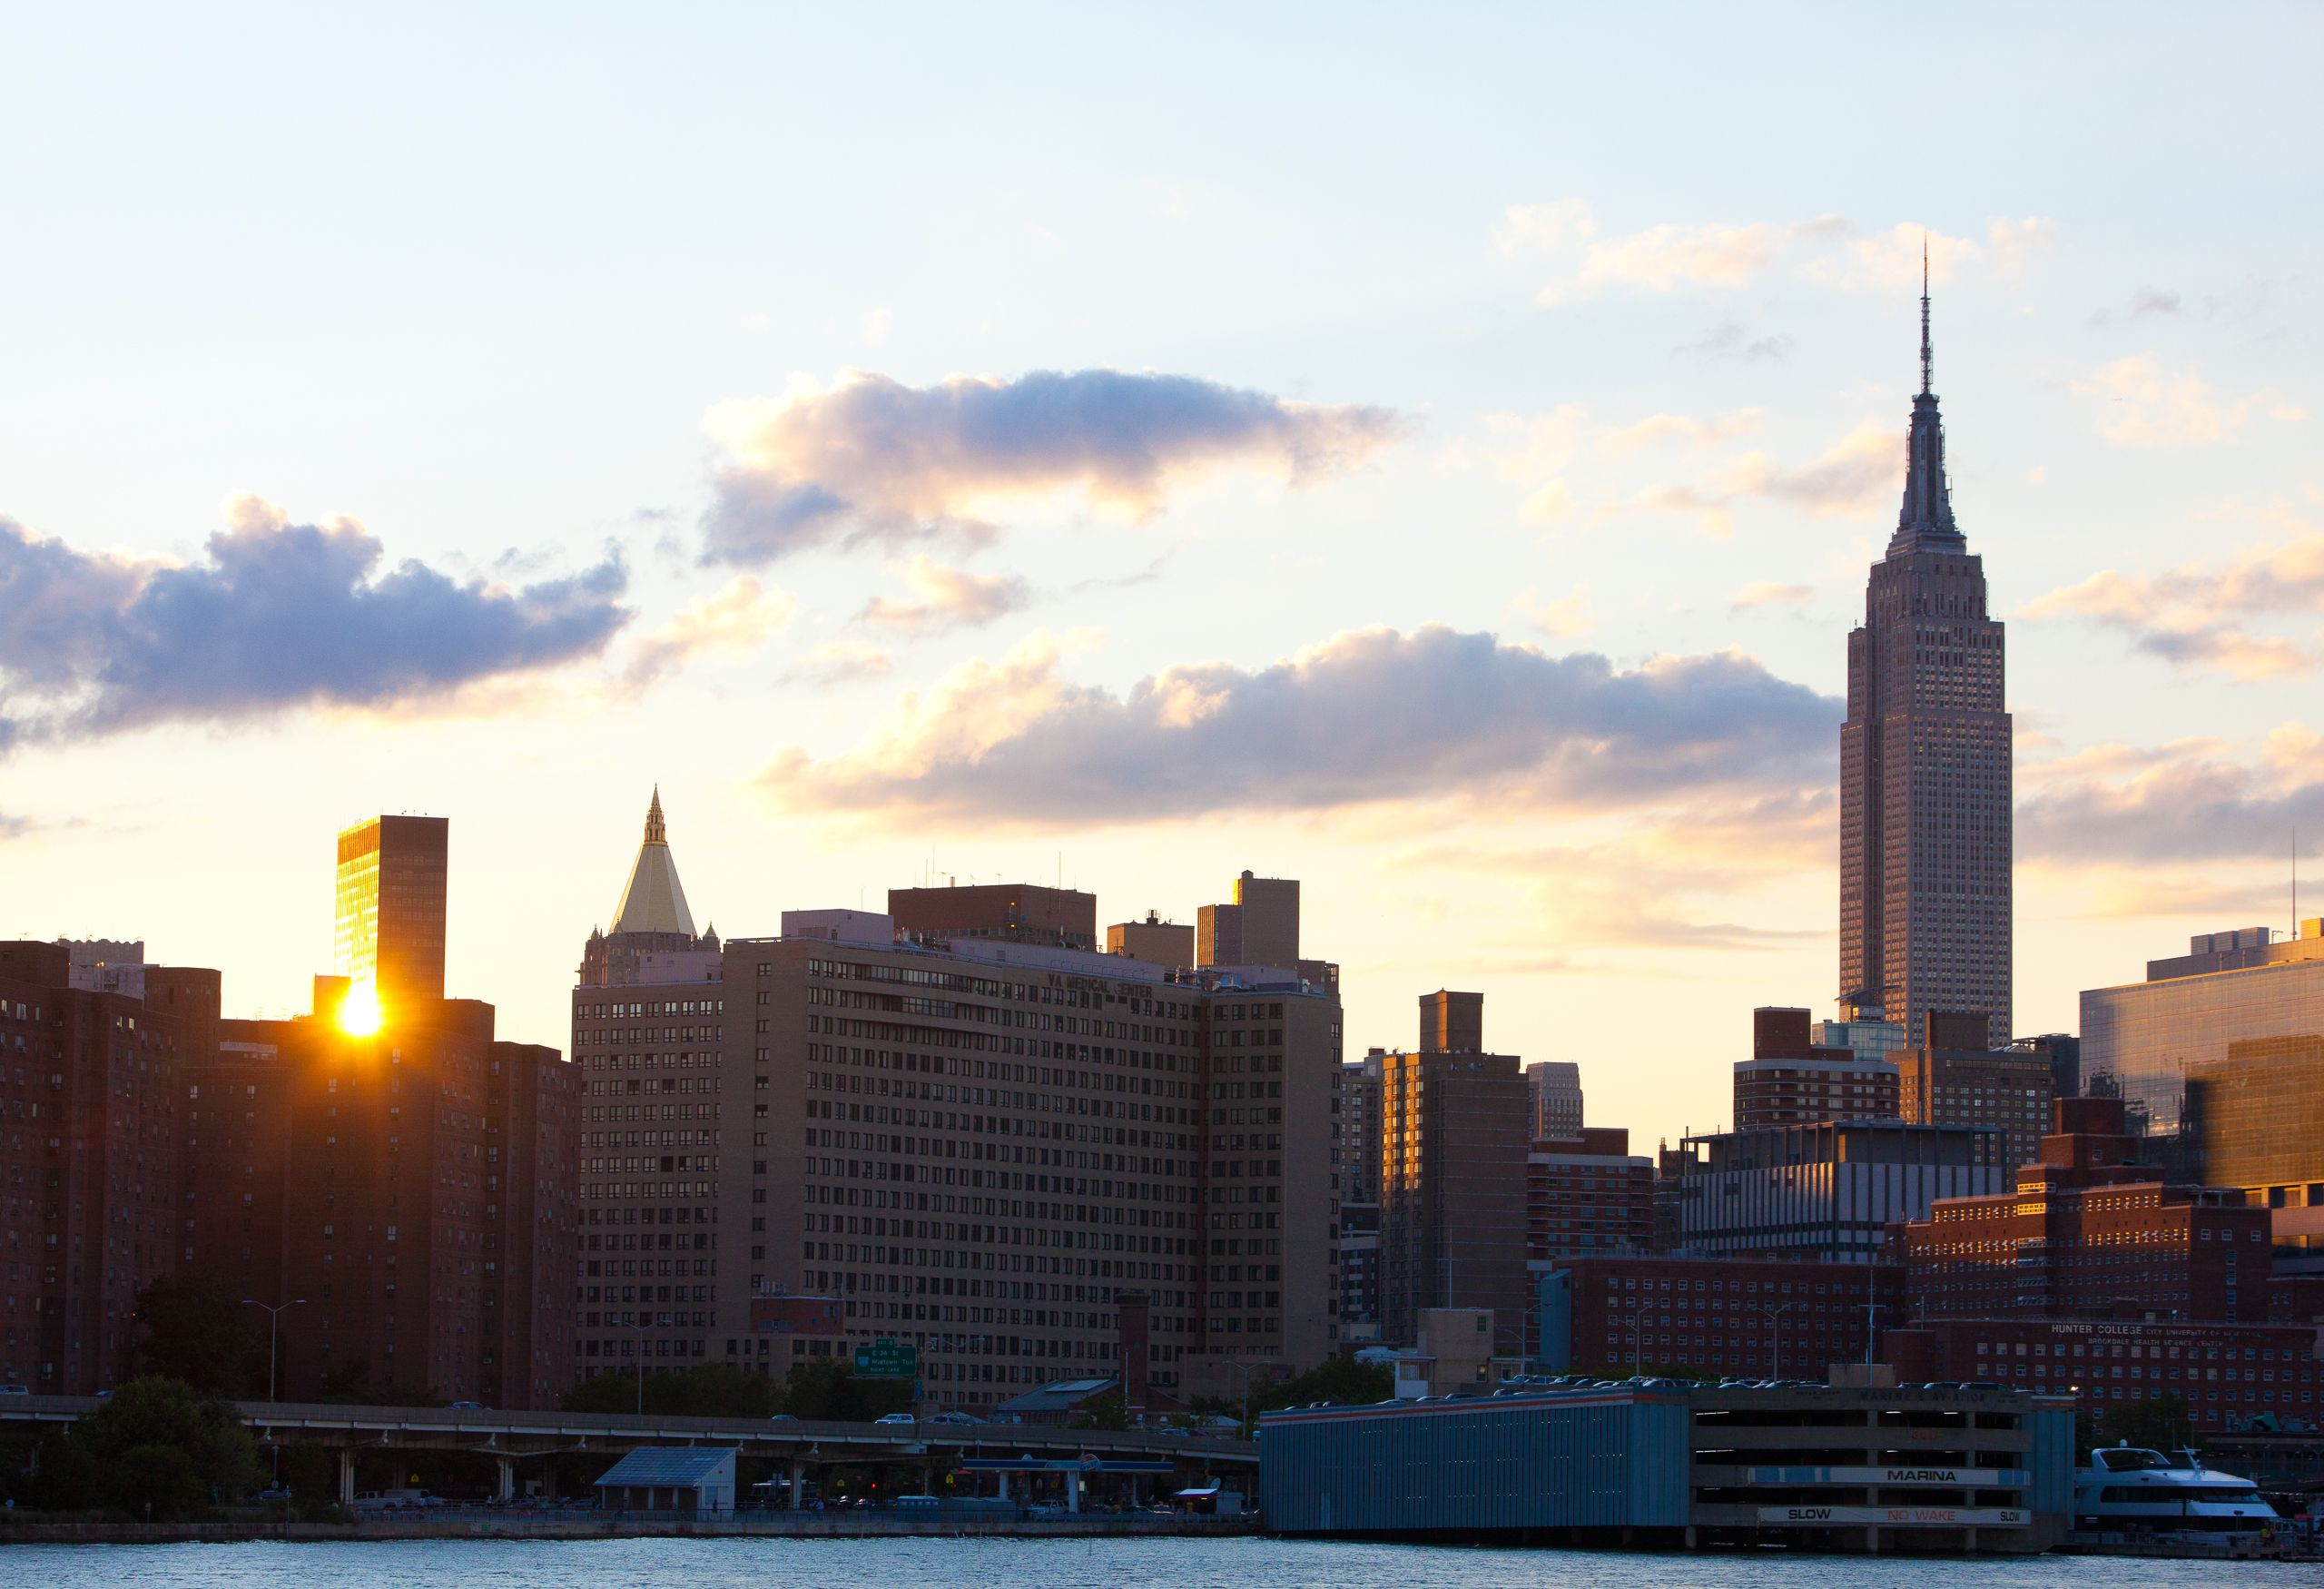 Empire State Building and setting sun as seen from the East River